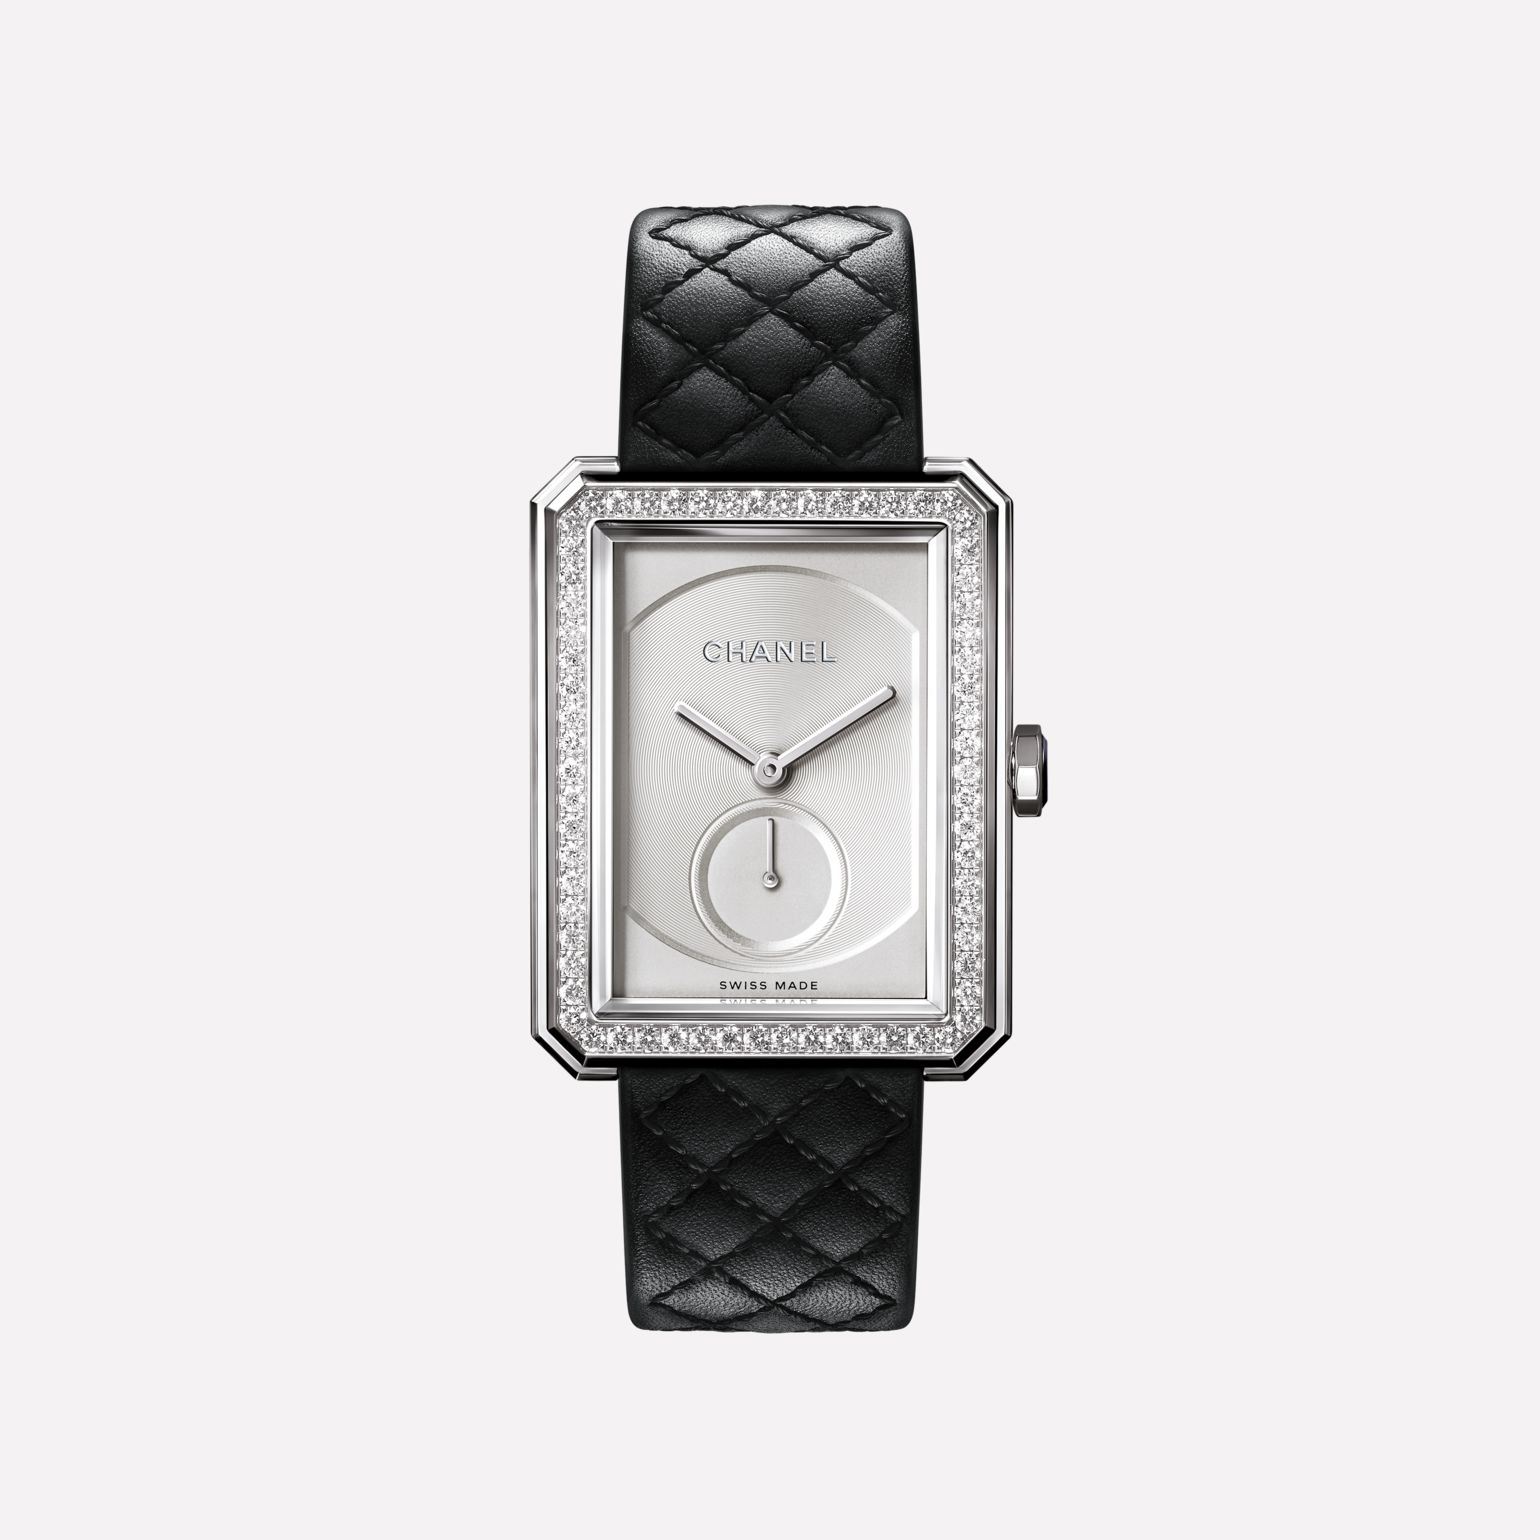 BOY·FRIEND Watch Large version, white gold and diamonds, quilted pattern calfskin strap